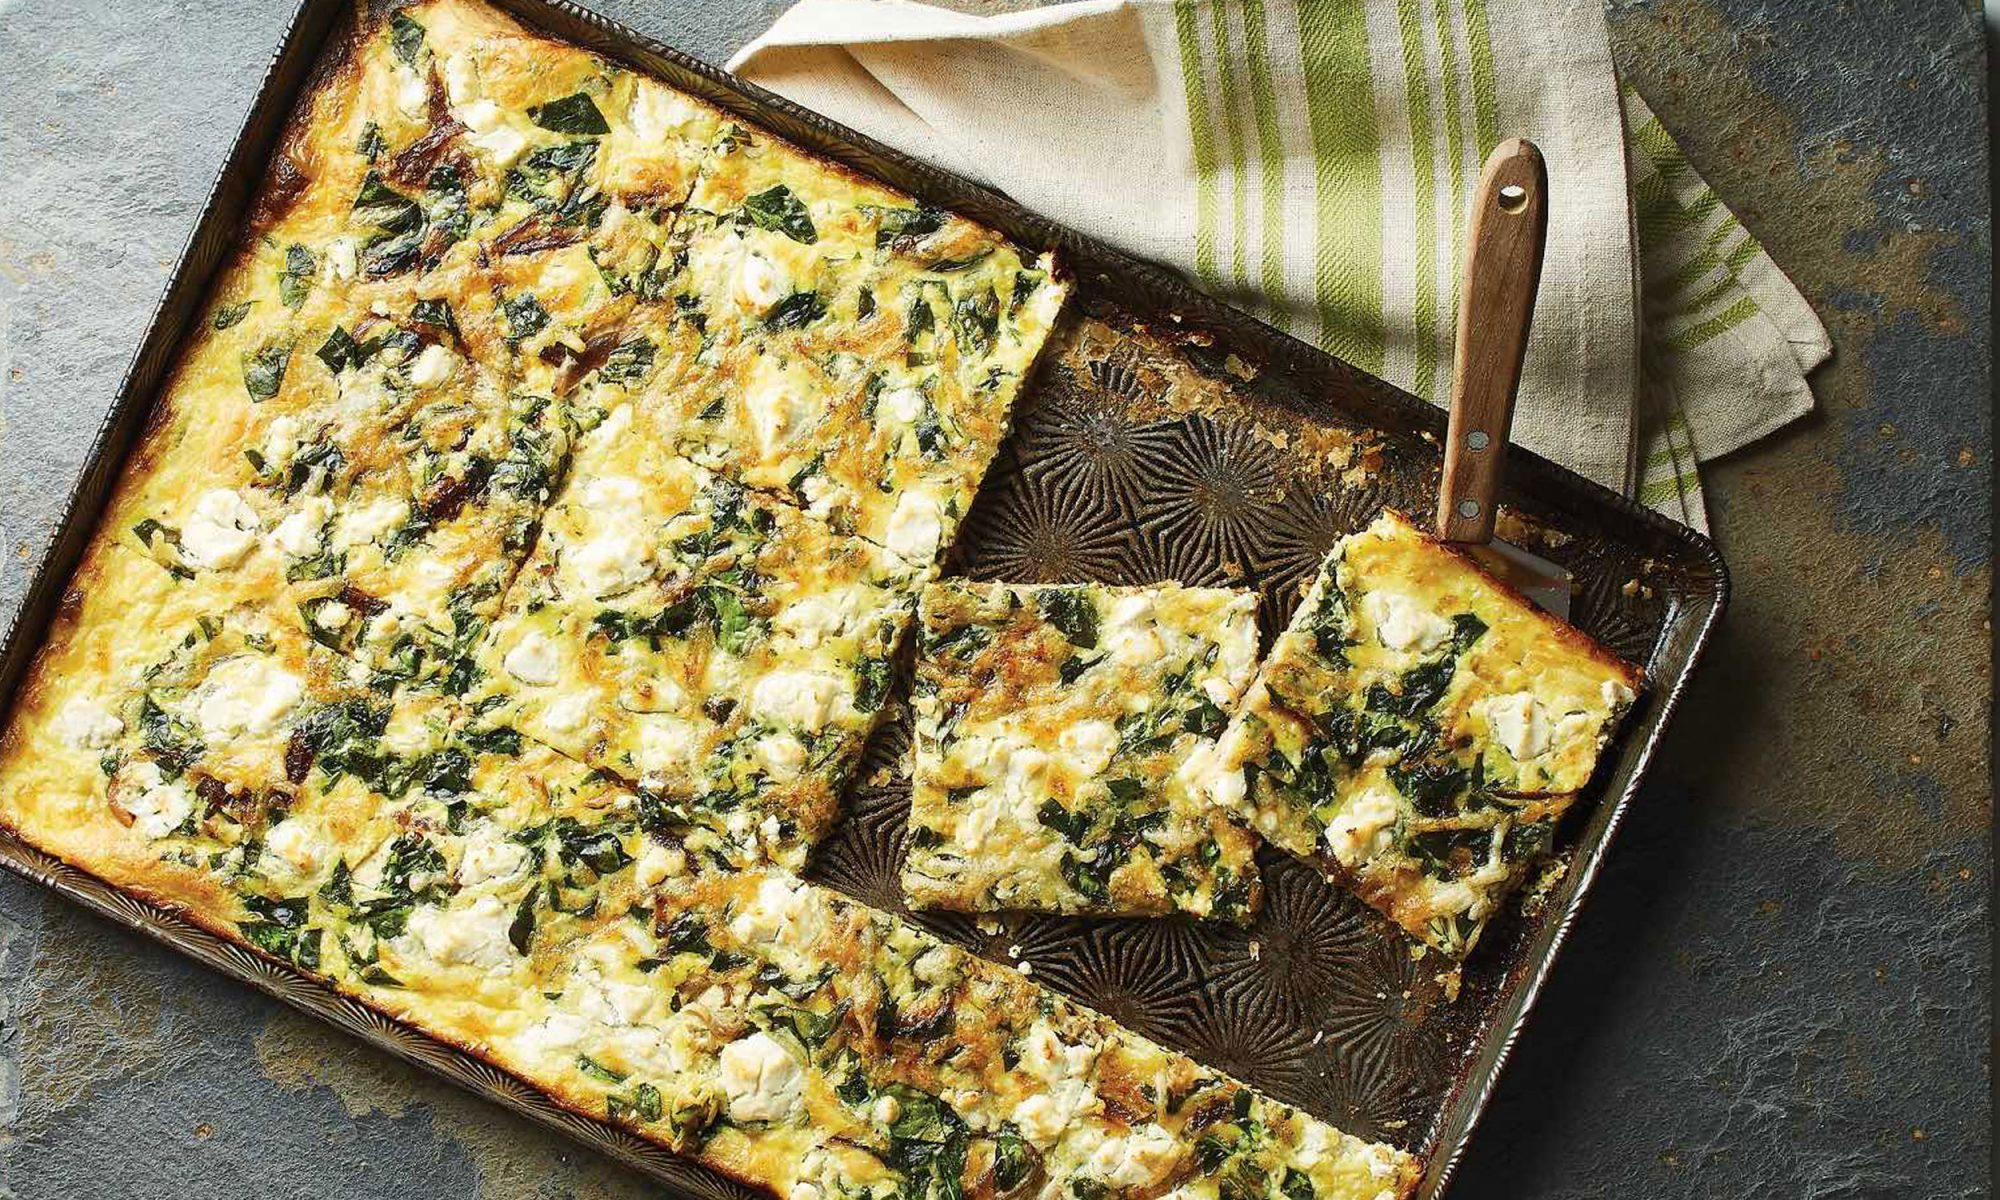 Slab Quiche with Spinach, Goat Cheese, and Caramelized Onions